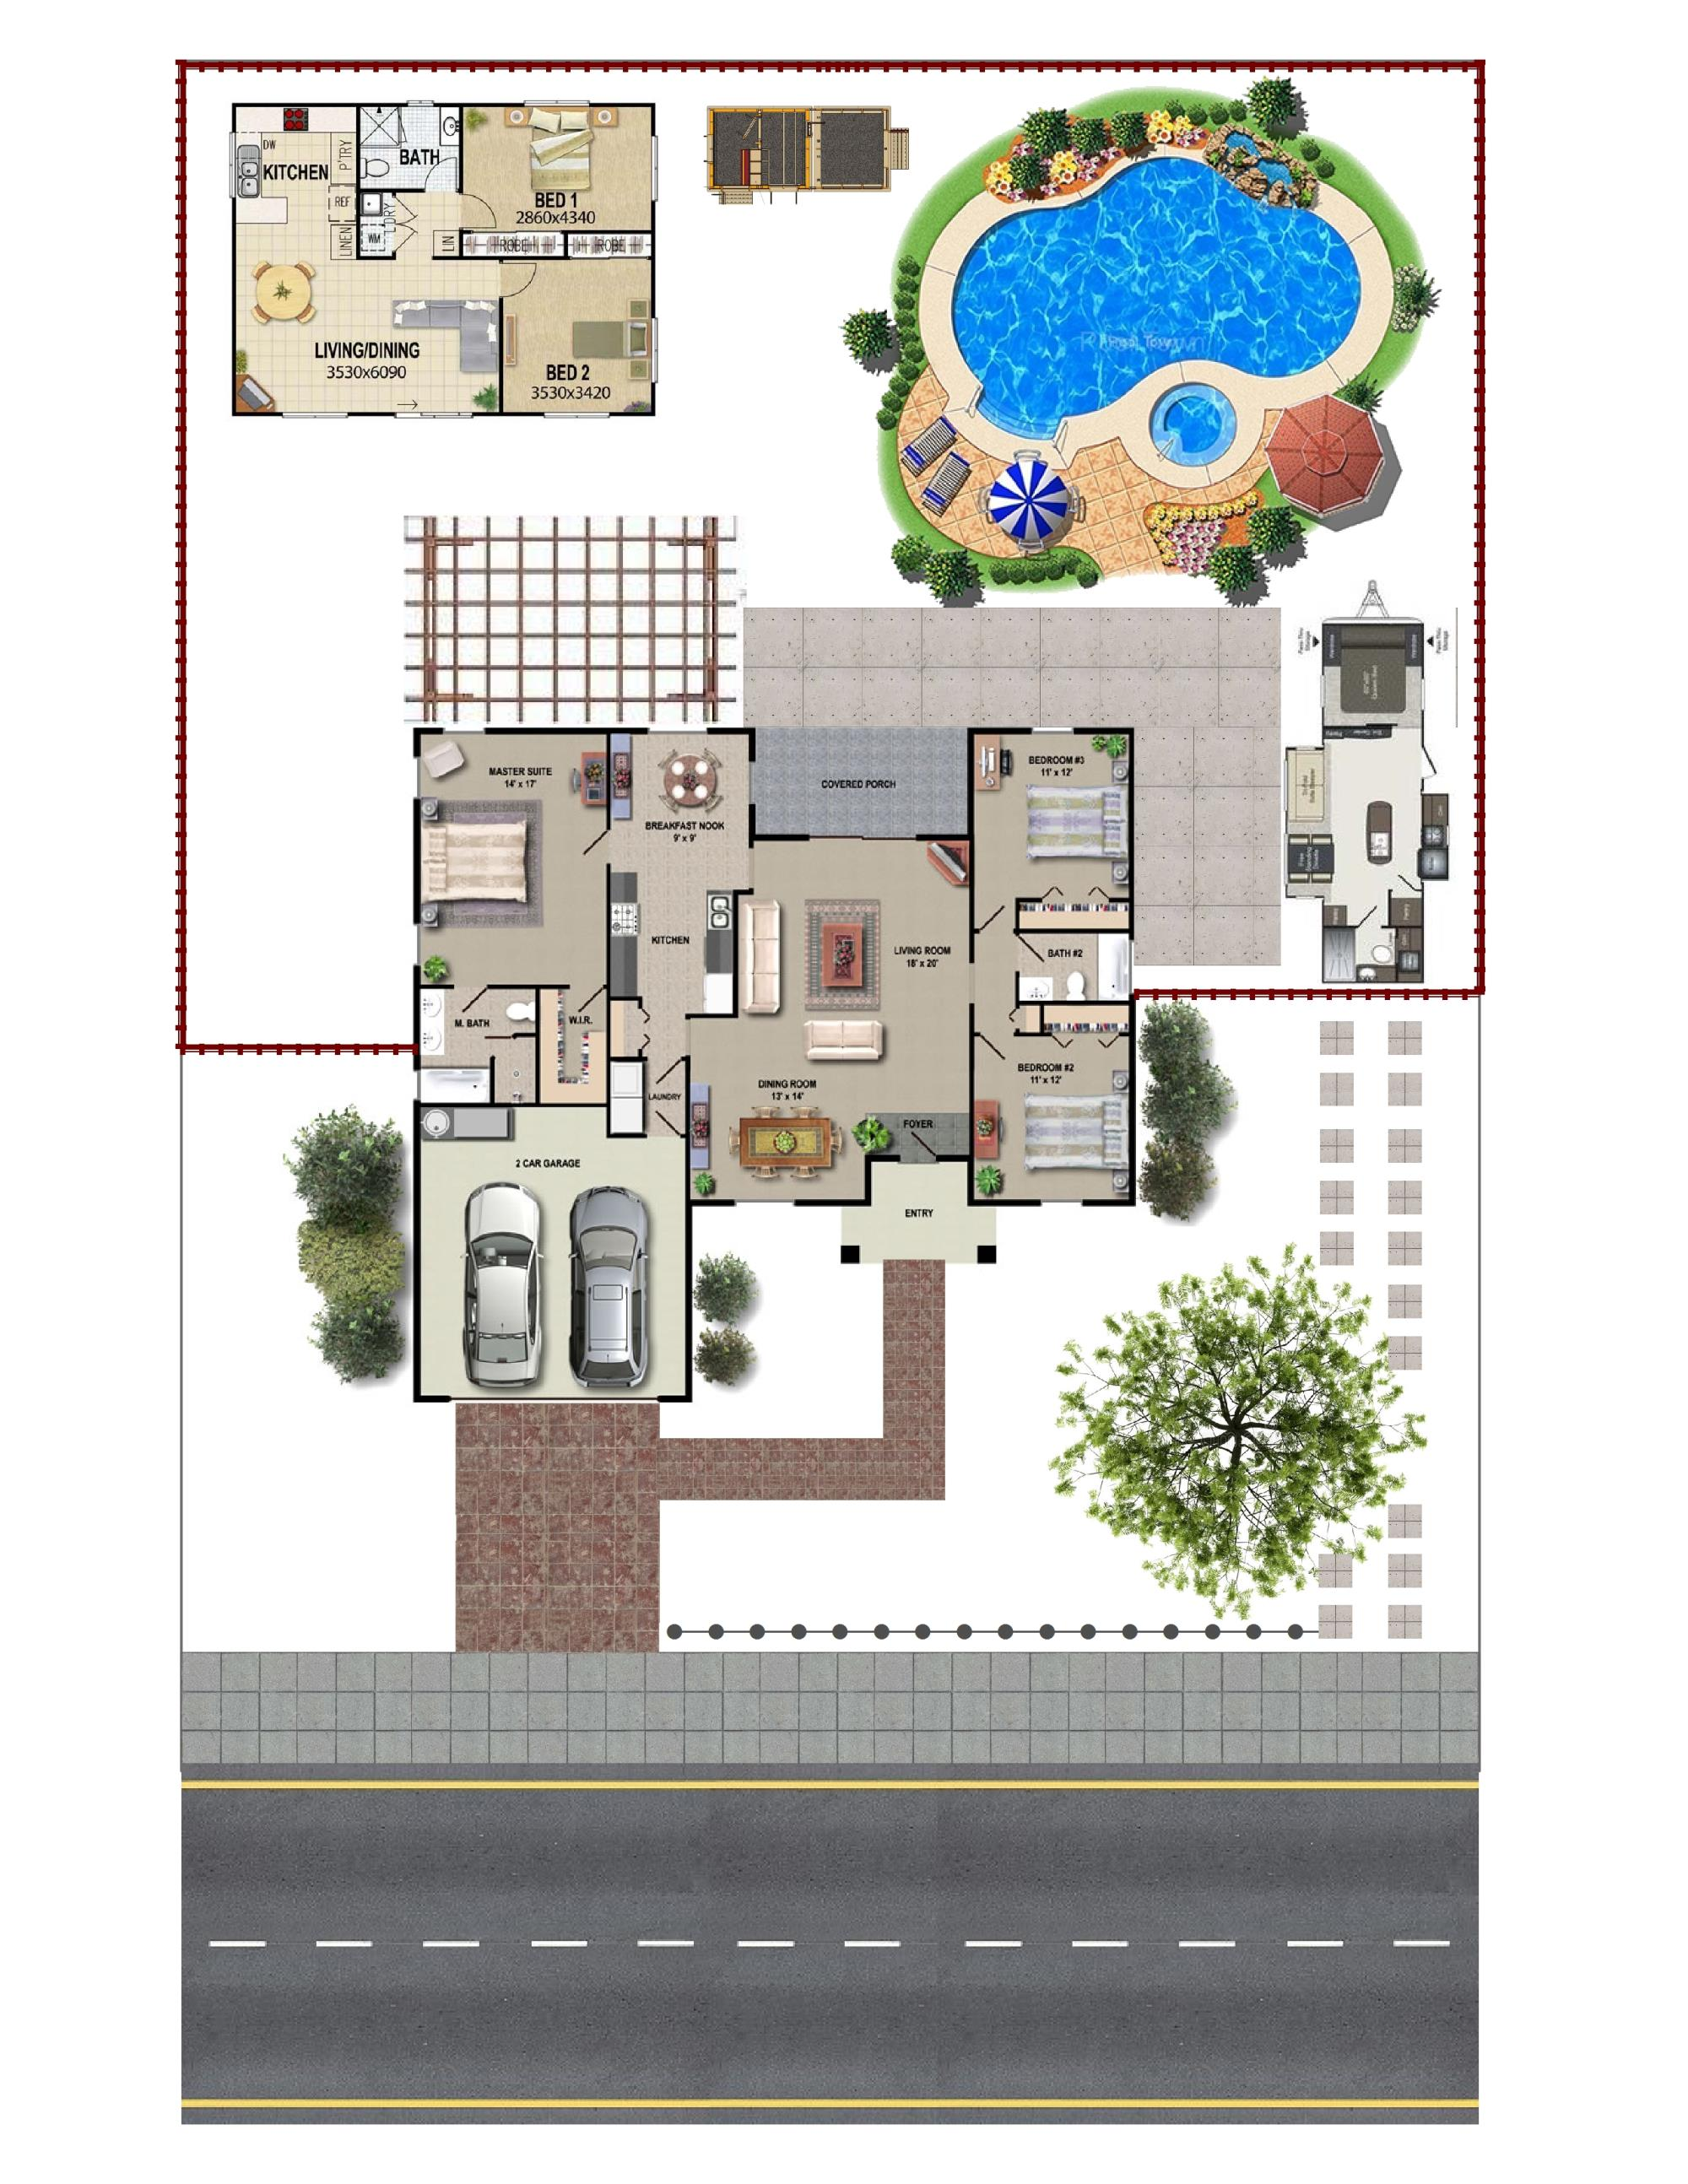 Current Planning and Zoning | Vacaville, CA